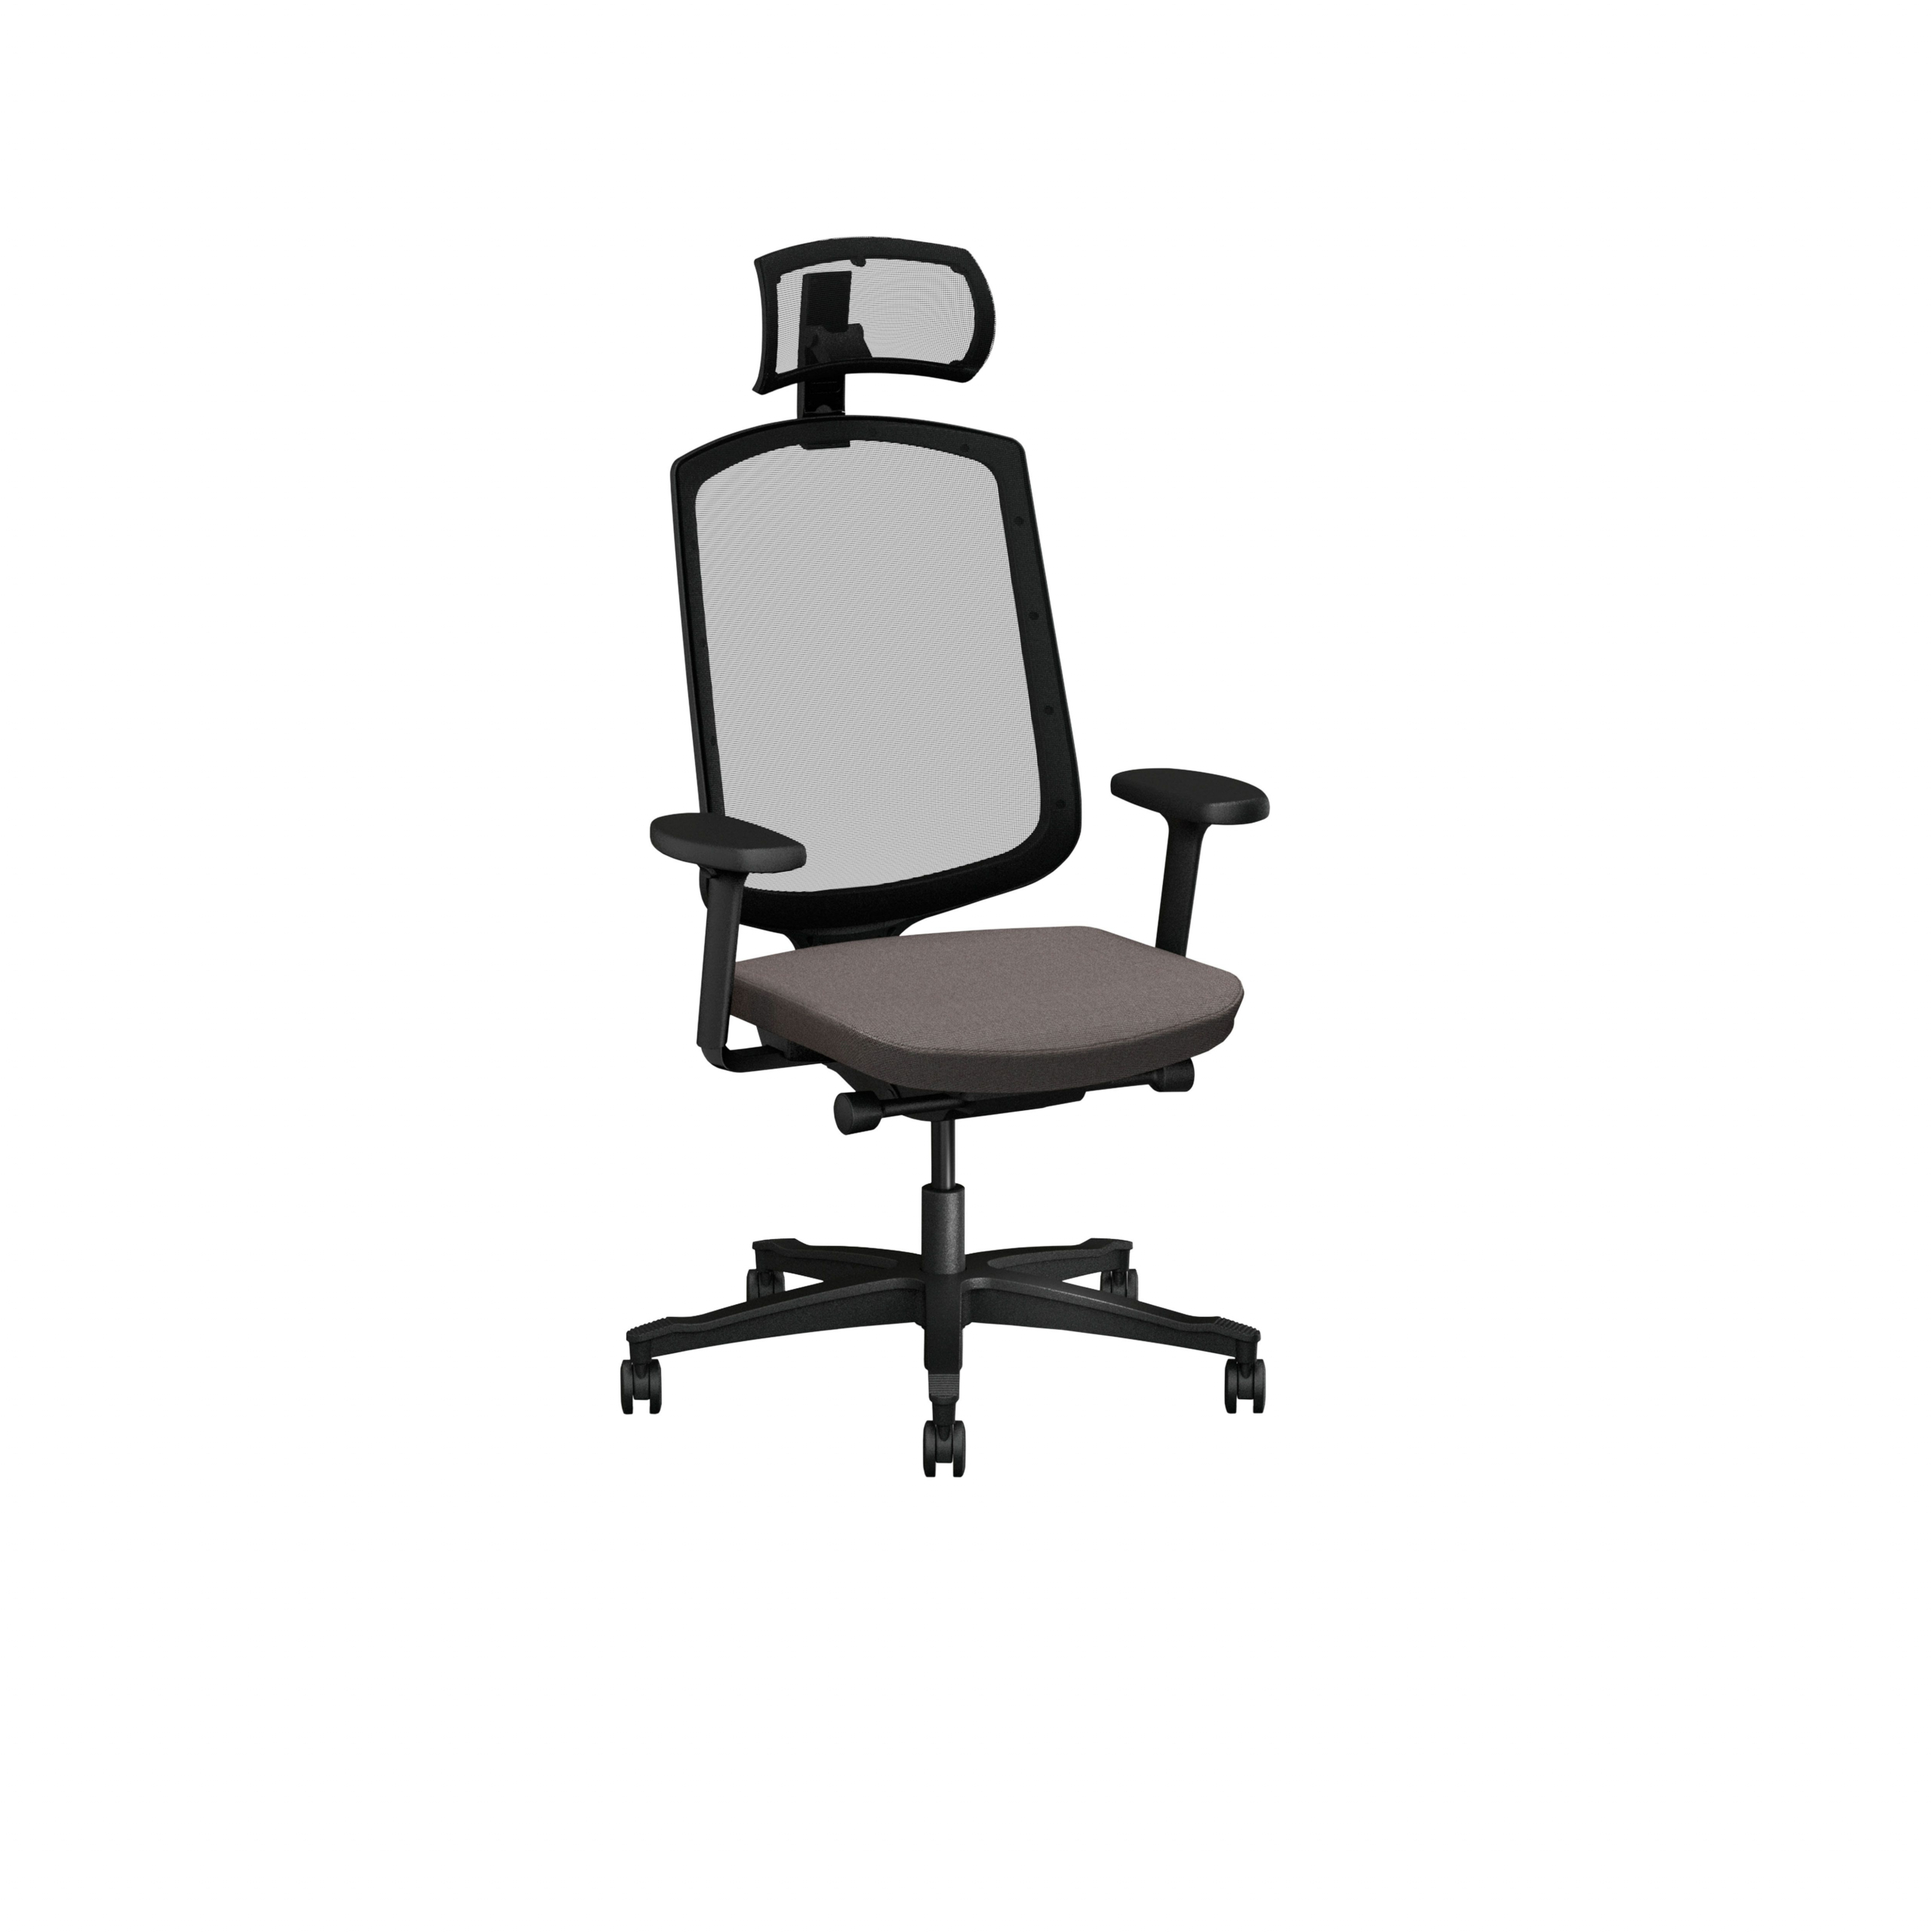 One Office chair with mesh back